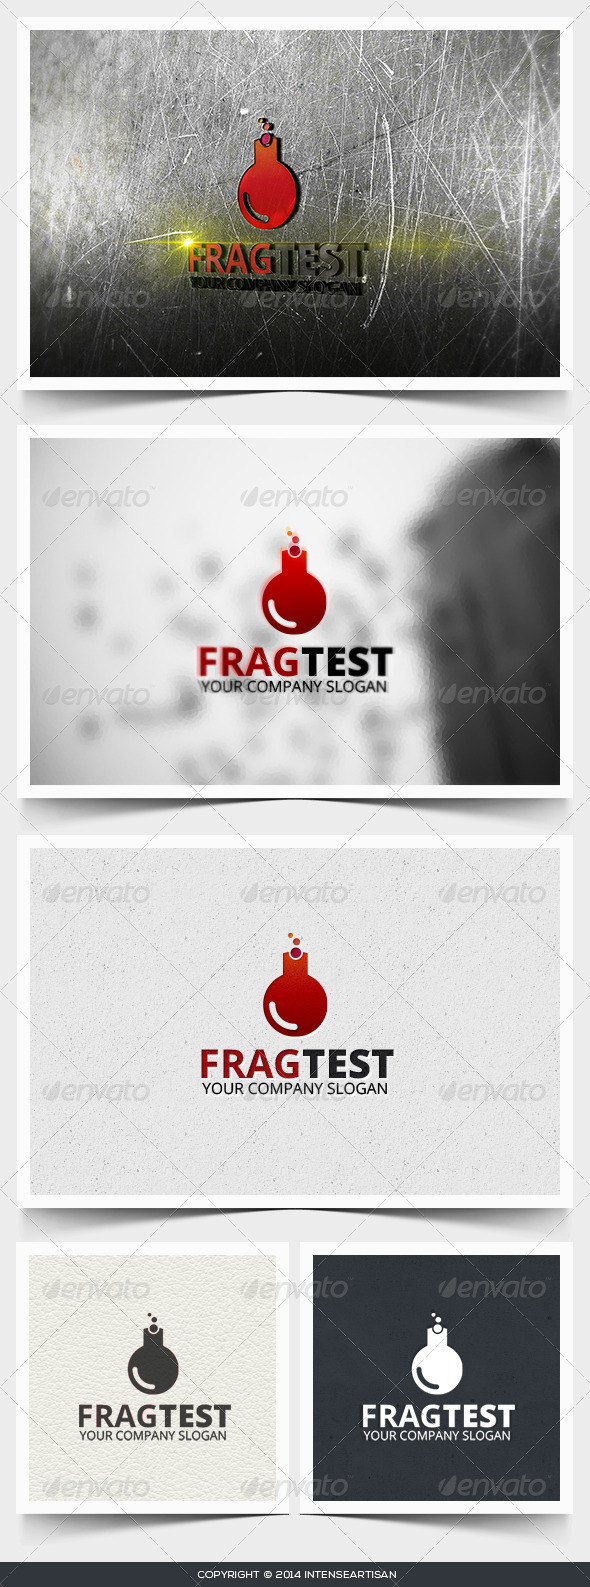 GraphicRiver Frag Test Logo Template 6643106